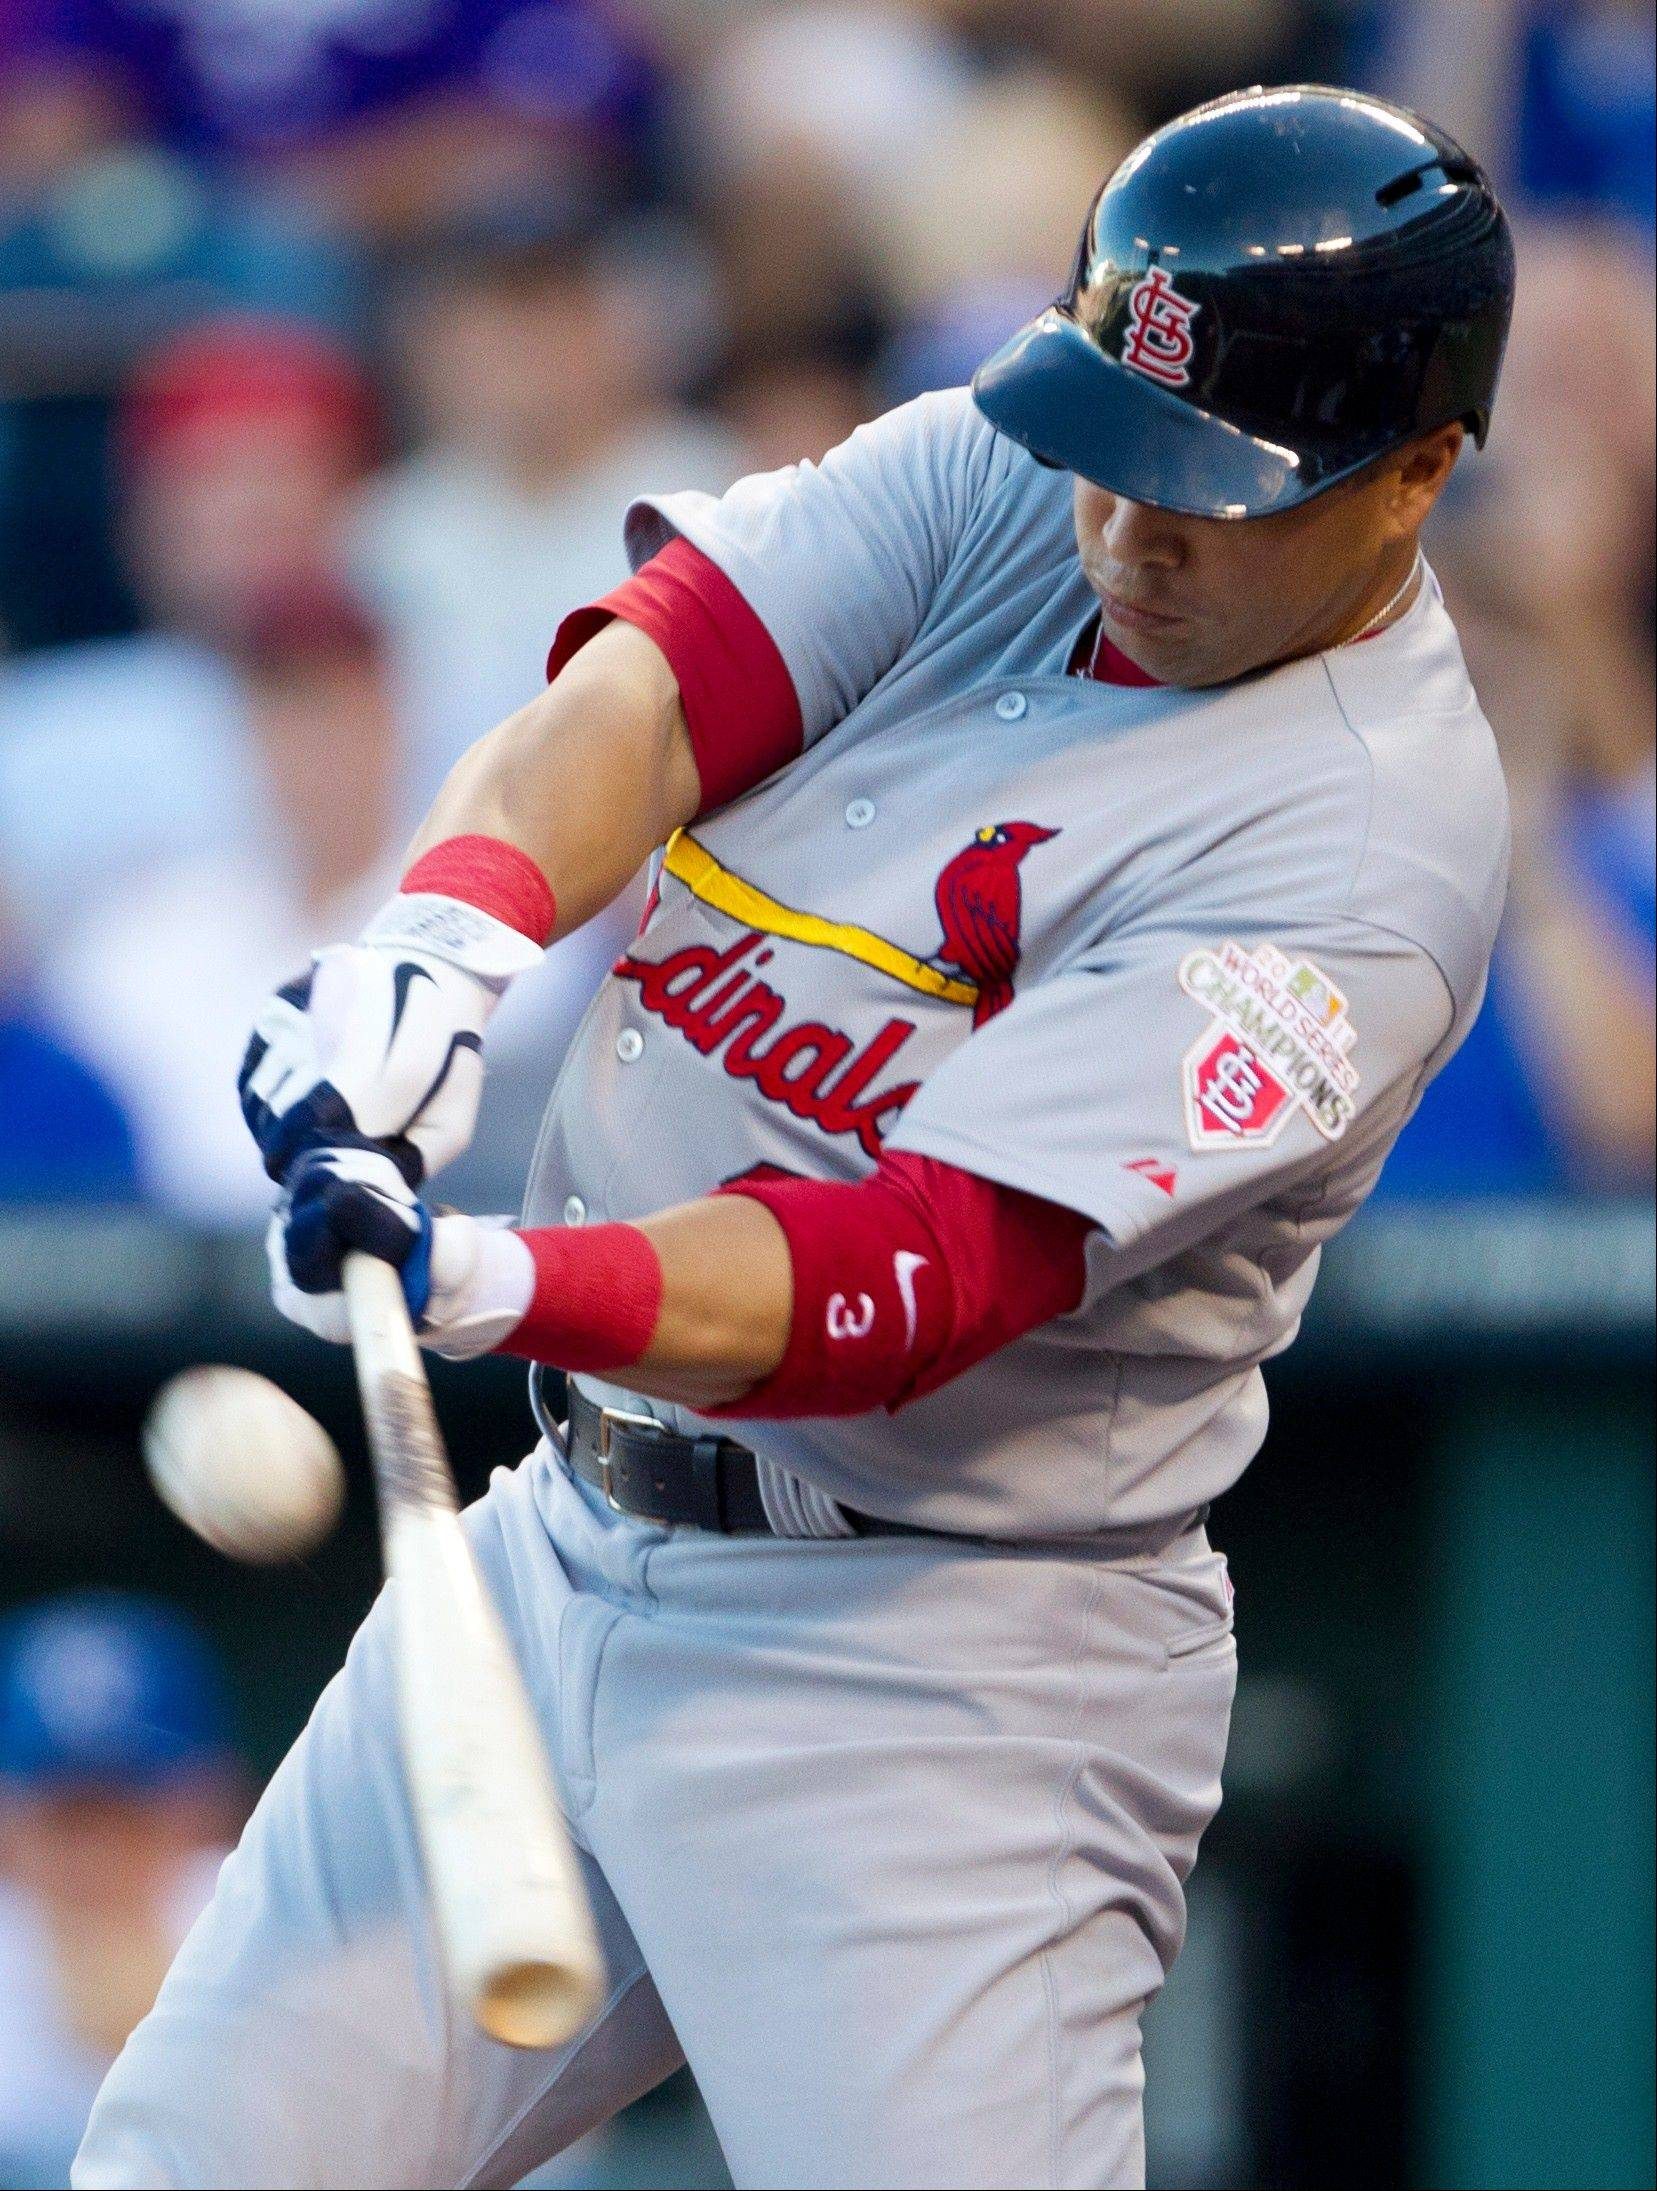 The Cardinals' Carlos Beltran hits a two-run double off Royals pitcher Vin Mazzaro during the first inning Friday in Kansas City, Mo.